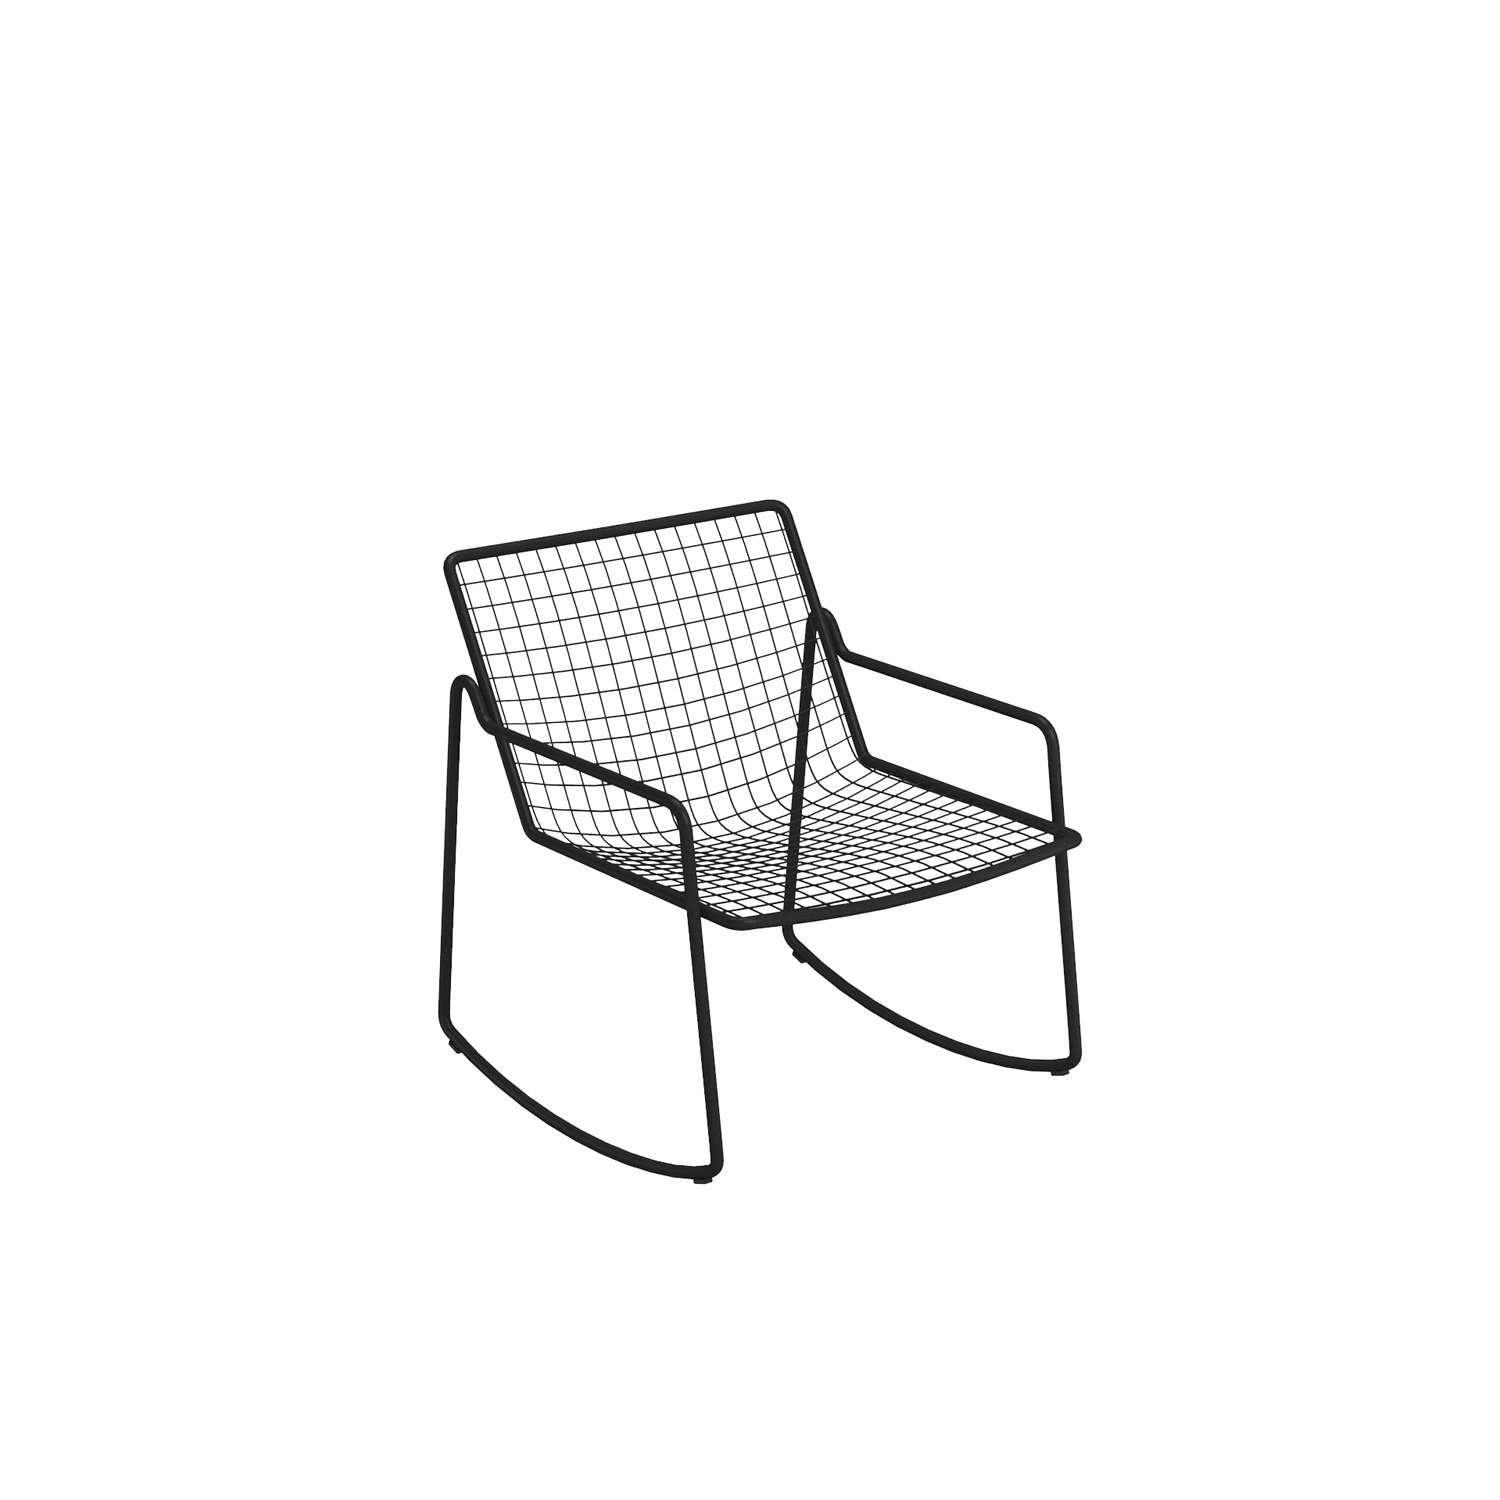 Rio R50 Swing Lounge Chair - RIO R50 is an expertly crafted re-edition of the historic model Rio of the 70s. RIO R50 has a frame in ASFORM steel tube, high-quality steel with high mechanical performance and high resistance to weight.  The manufacturing process creates a strongly characterized sign, a letter R, which is identified in the junction between seat and backrest. All structural weldings are made with Mig technology which gives great resistance to stress and rust risk; meanwhile the net, composed by steel wires, is electro-welded to the frame for a more precise aesthetics.  Like all EMU products, a cataphoresis pretreatment is provided and then a thermosetting powder coating treatment, which finally produces a layer of homogeneous paint in terms of thickness with a high level of adherence and resistance. Nylon feet supports make it easy to move and protect the product. RIO R50 is a complete seats collection composed by dining chair and armchair, lounge armchair, swing armchair, stool and coffee table.  | Matter of Stuff